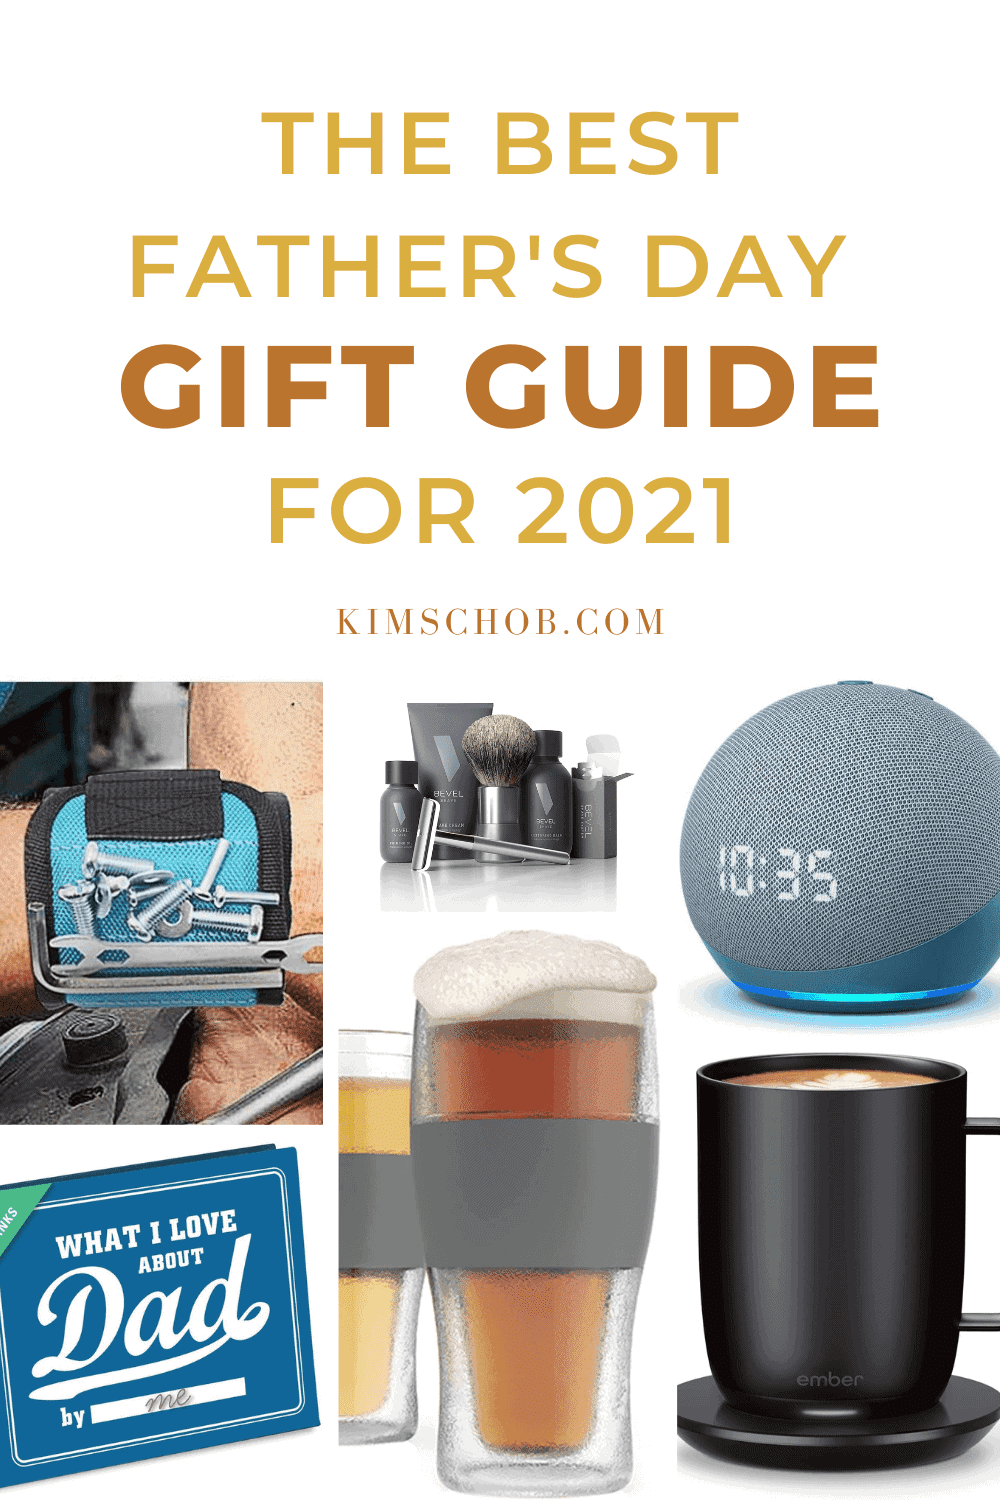 The Best Father's Day Gift Guide for 2021 | kimschob.com